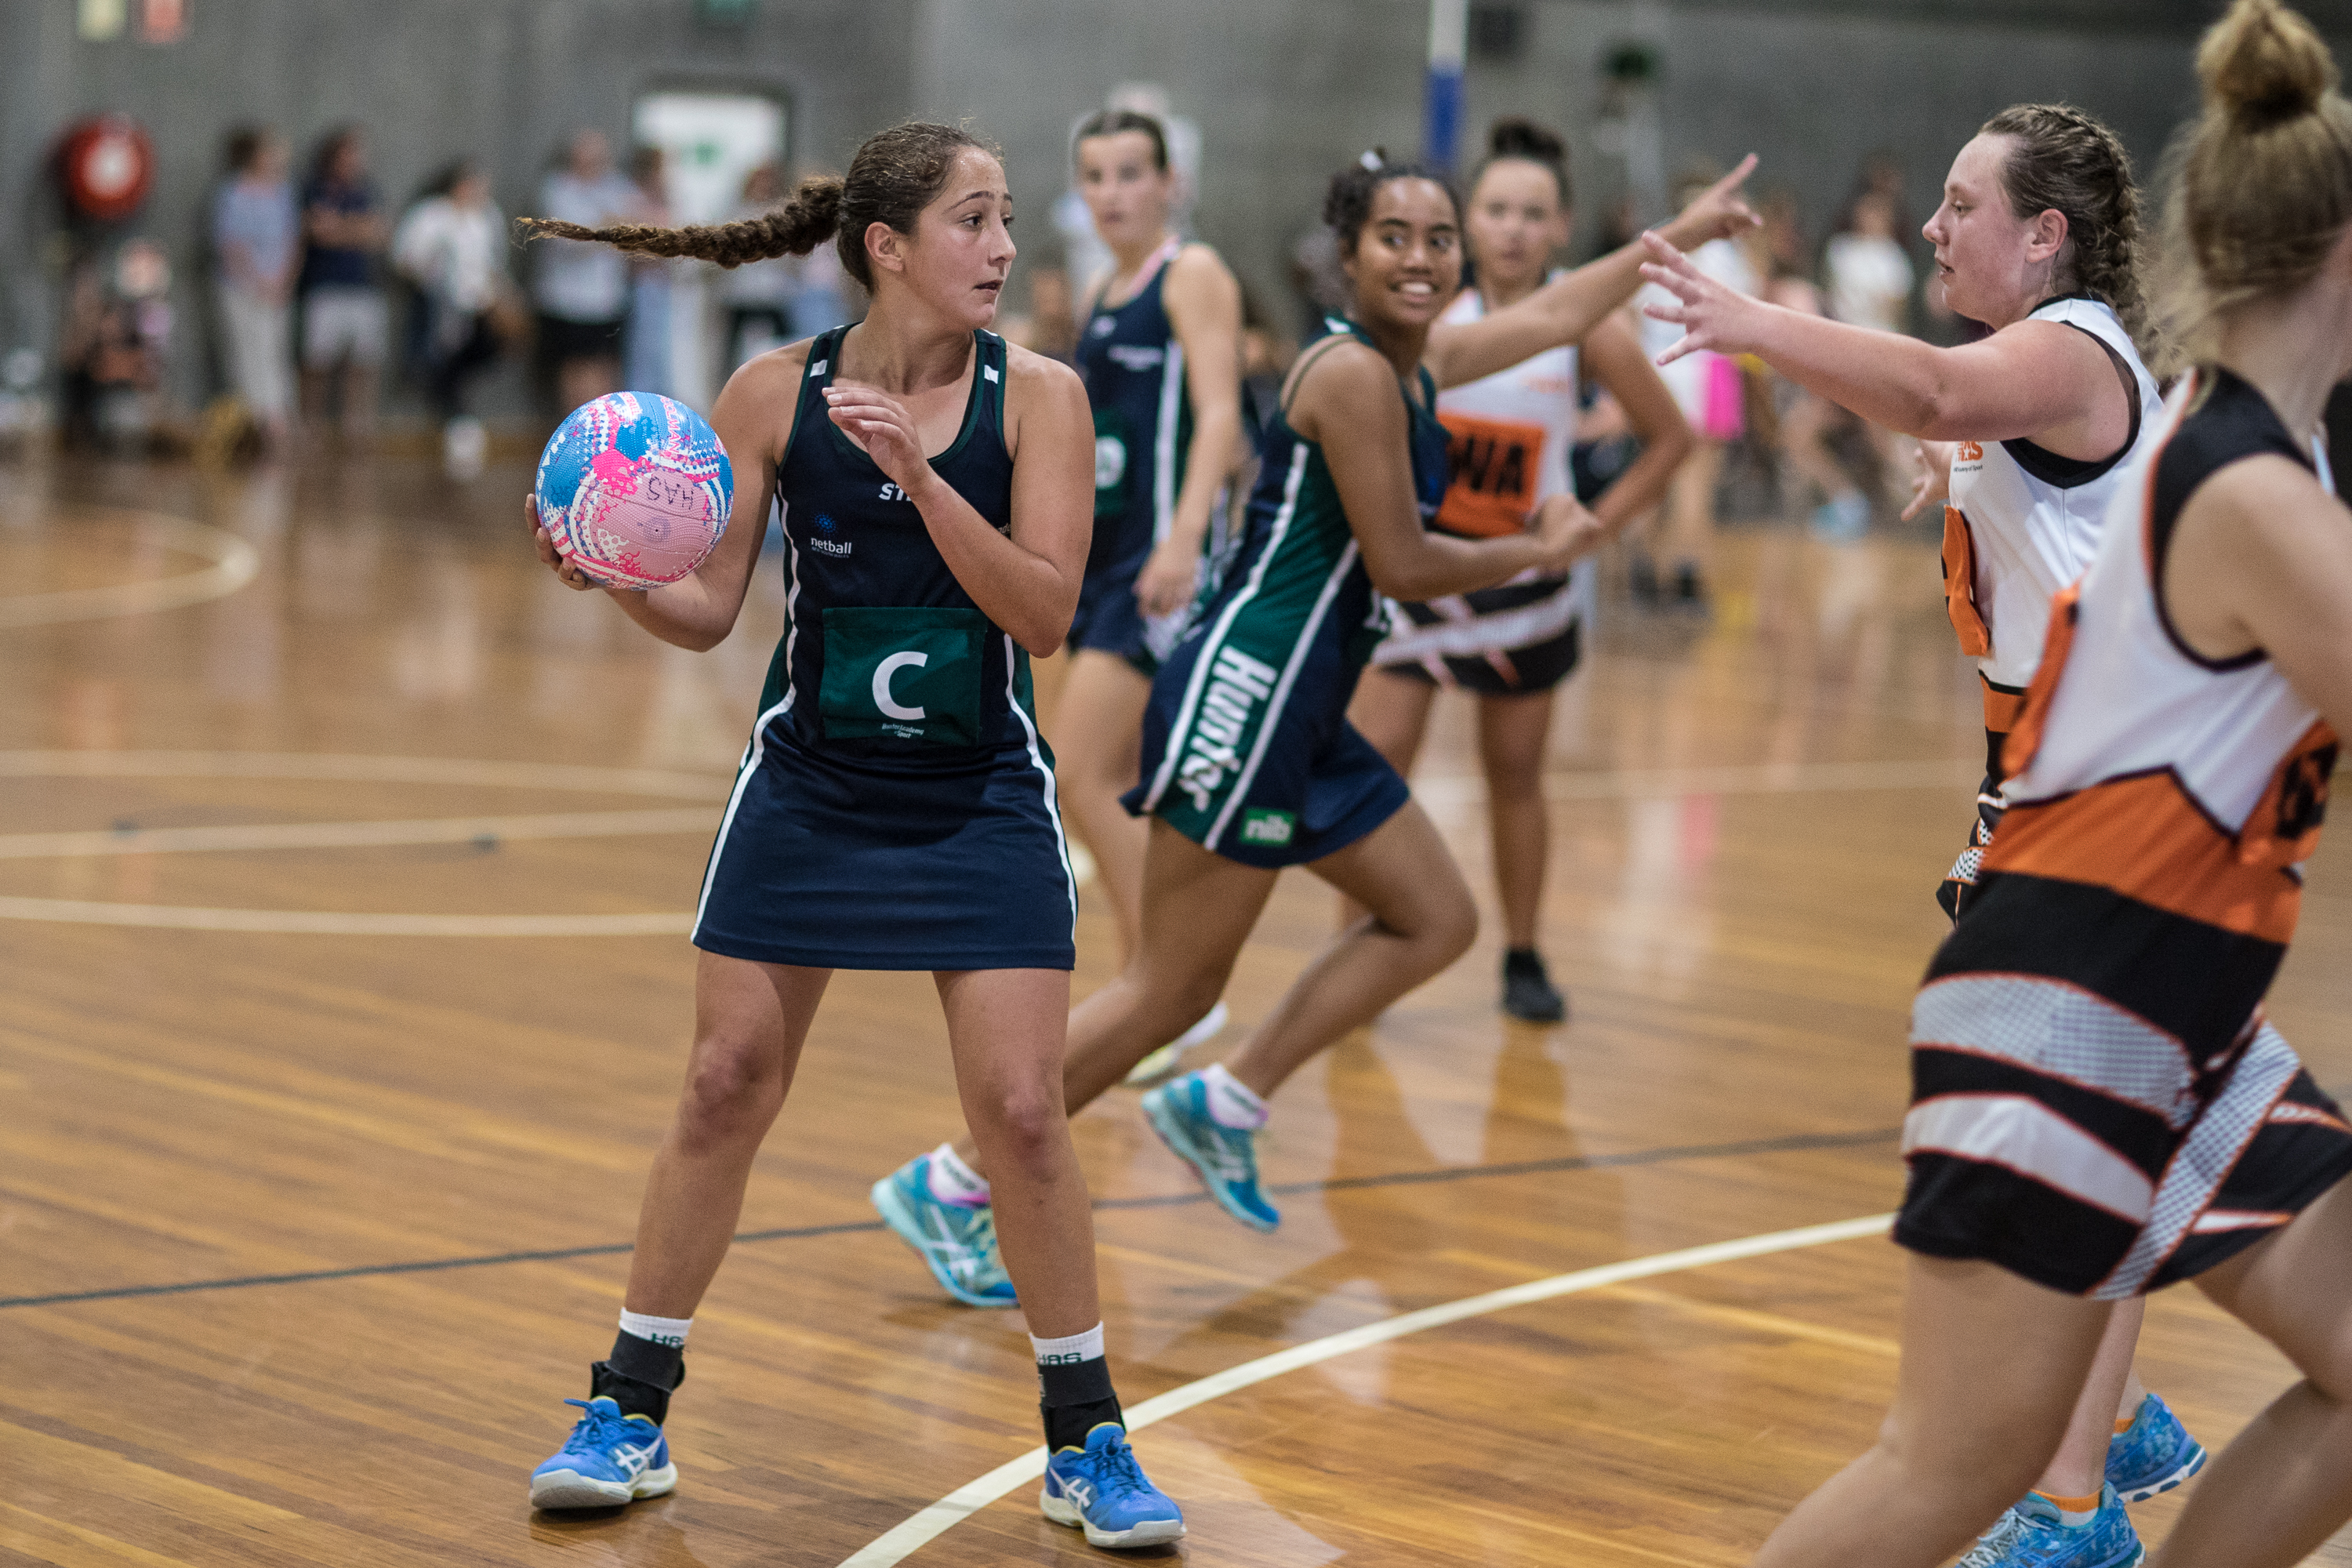 The Hunter Academy of Sport Greater Bank Netball program is now open for nominations, with over 100 young athletes already registering to trial for the 2019/20 season.